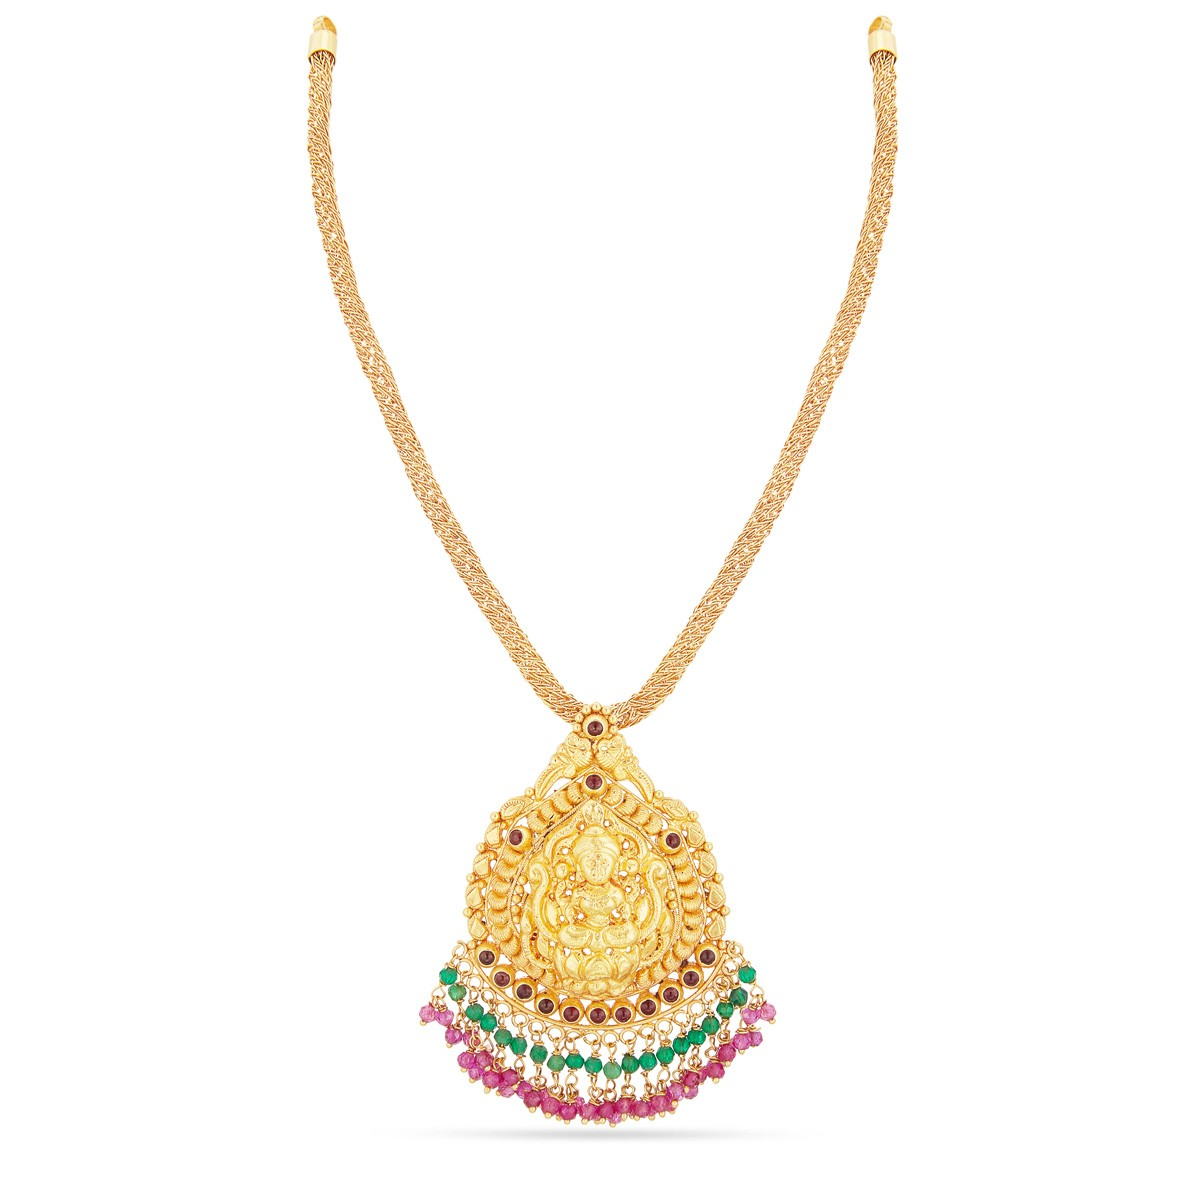 Gold necklace designs with price in rupees jewelry gallery - Gold Necklace Designs With Price In Rupees Jewelry Gallery 4